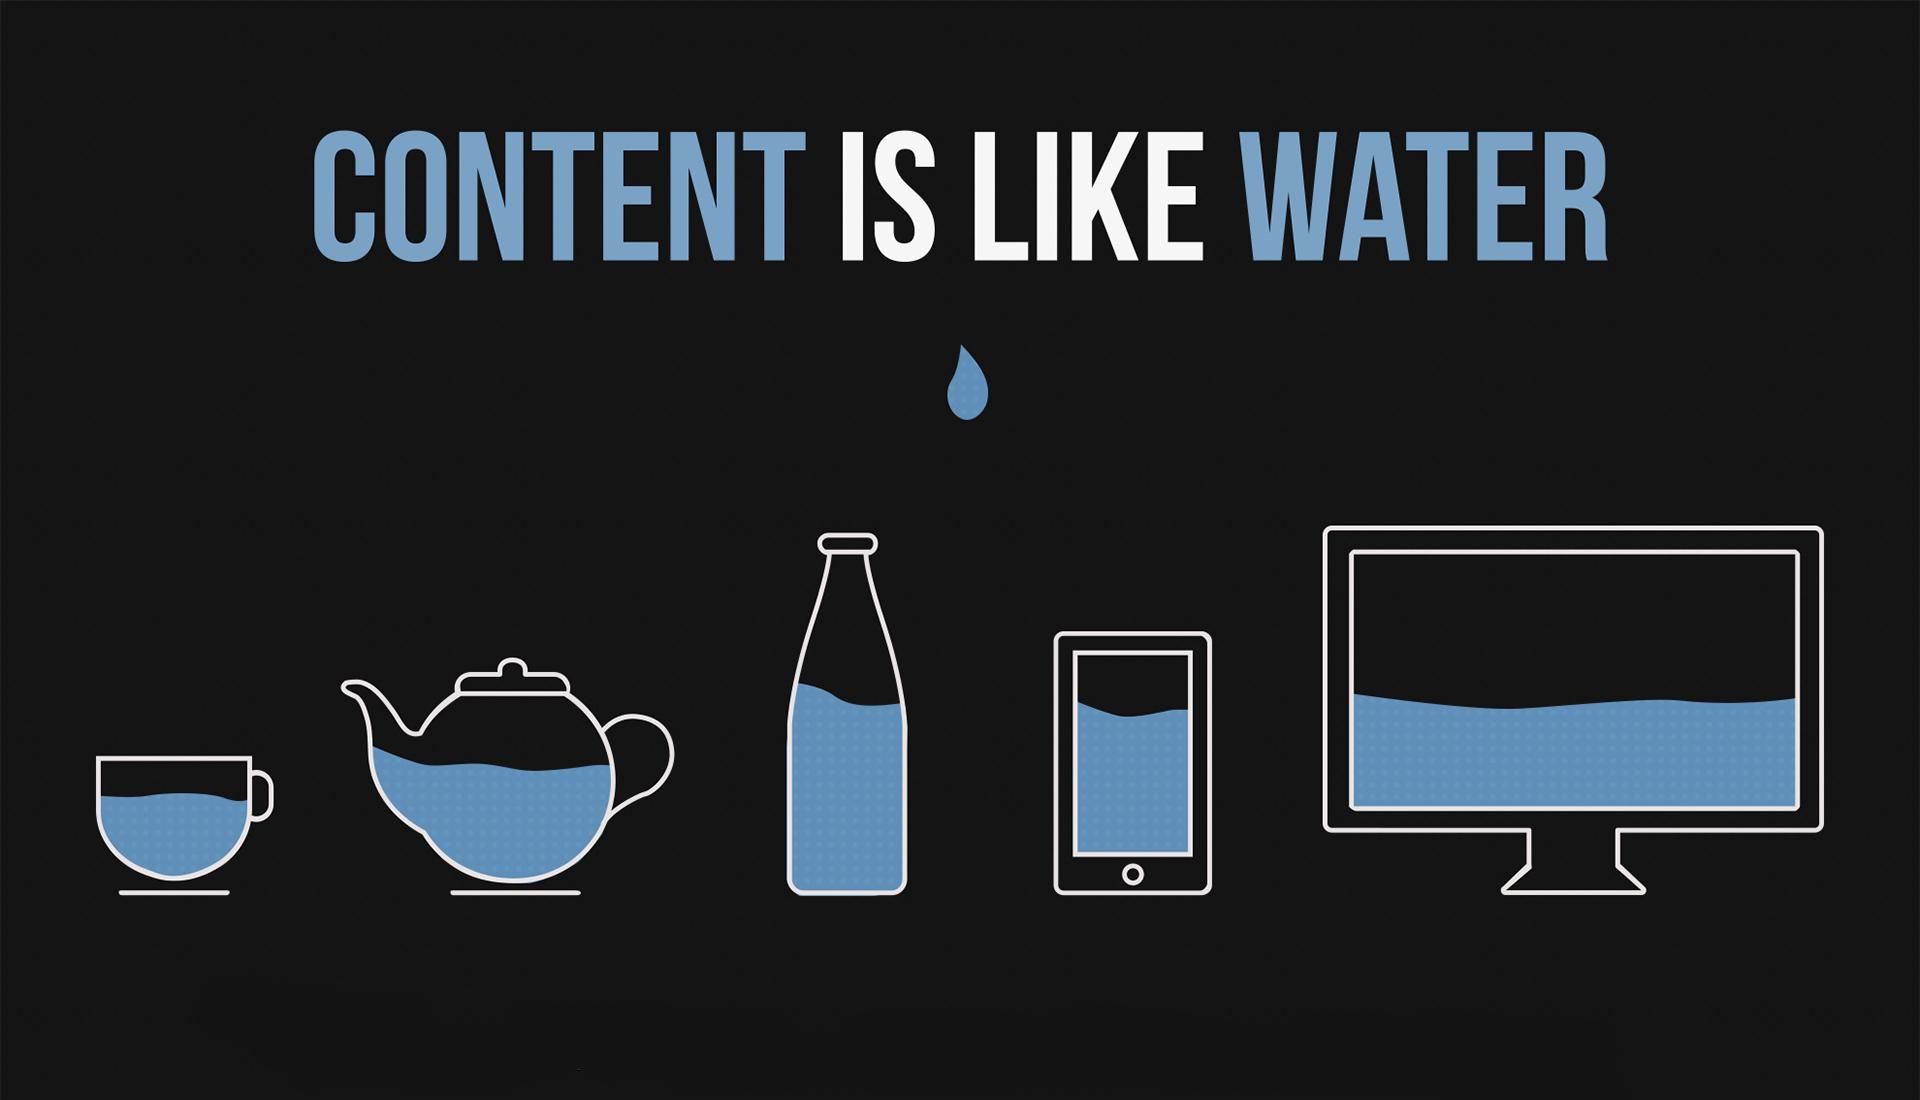 Content Is Like Water Illustration by Stephanie Walter